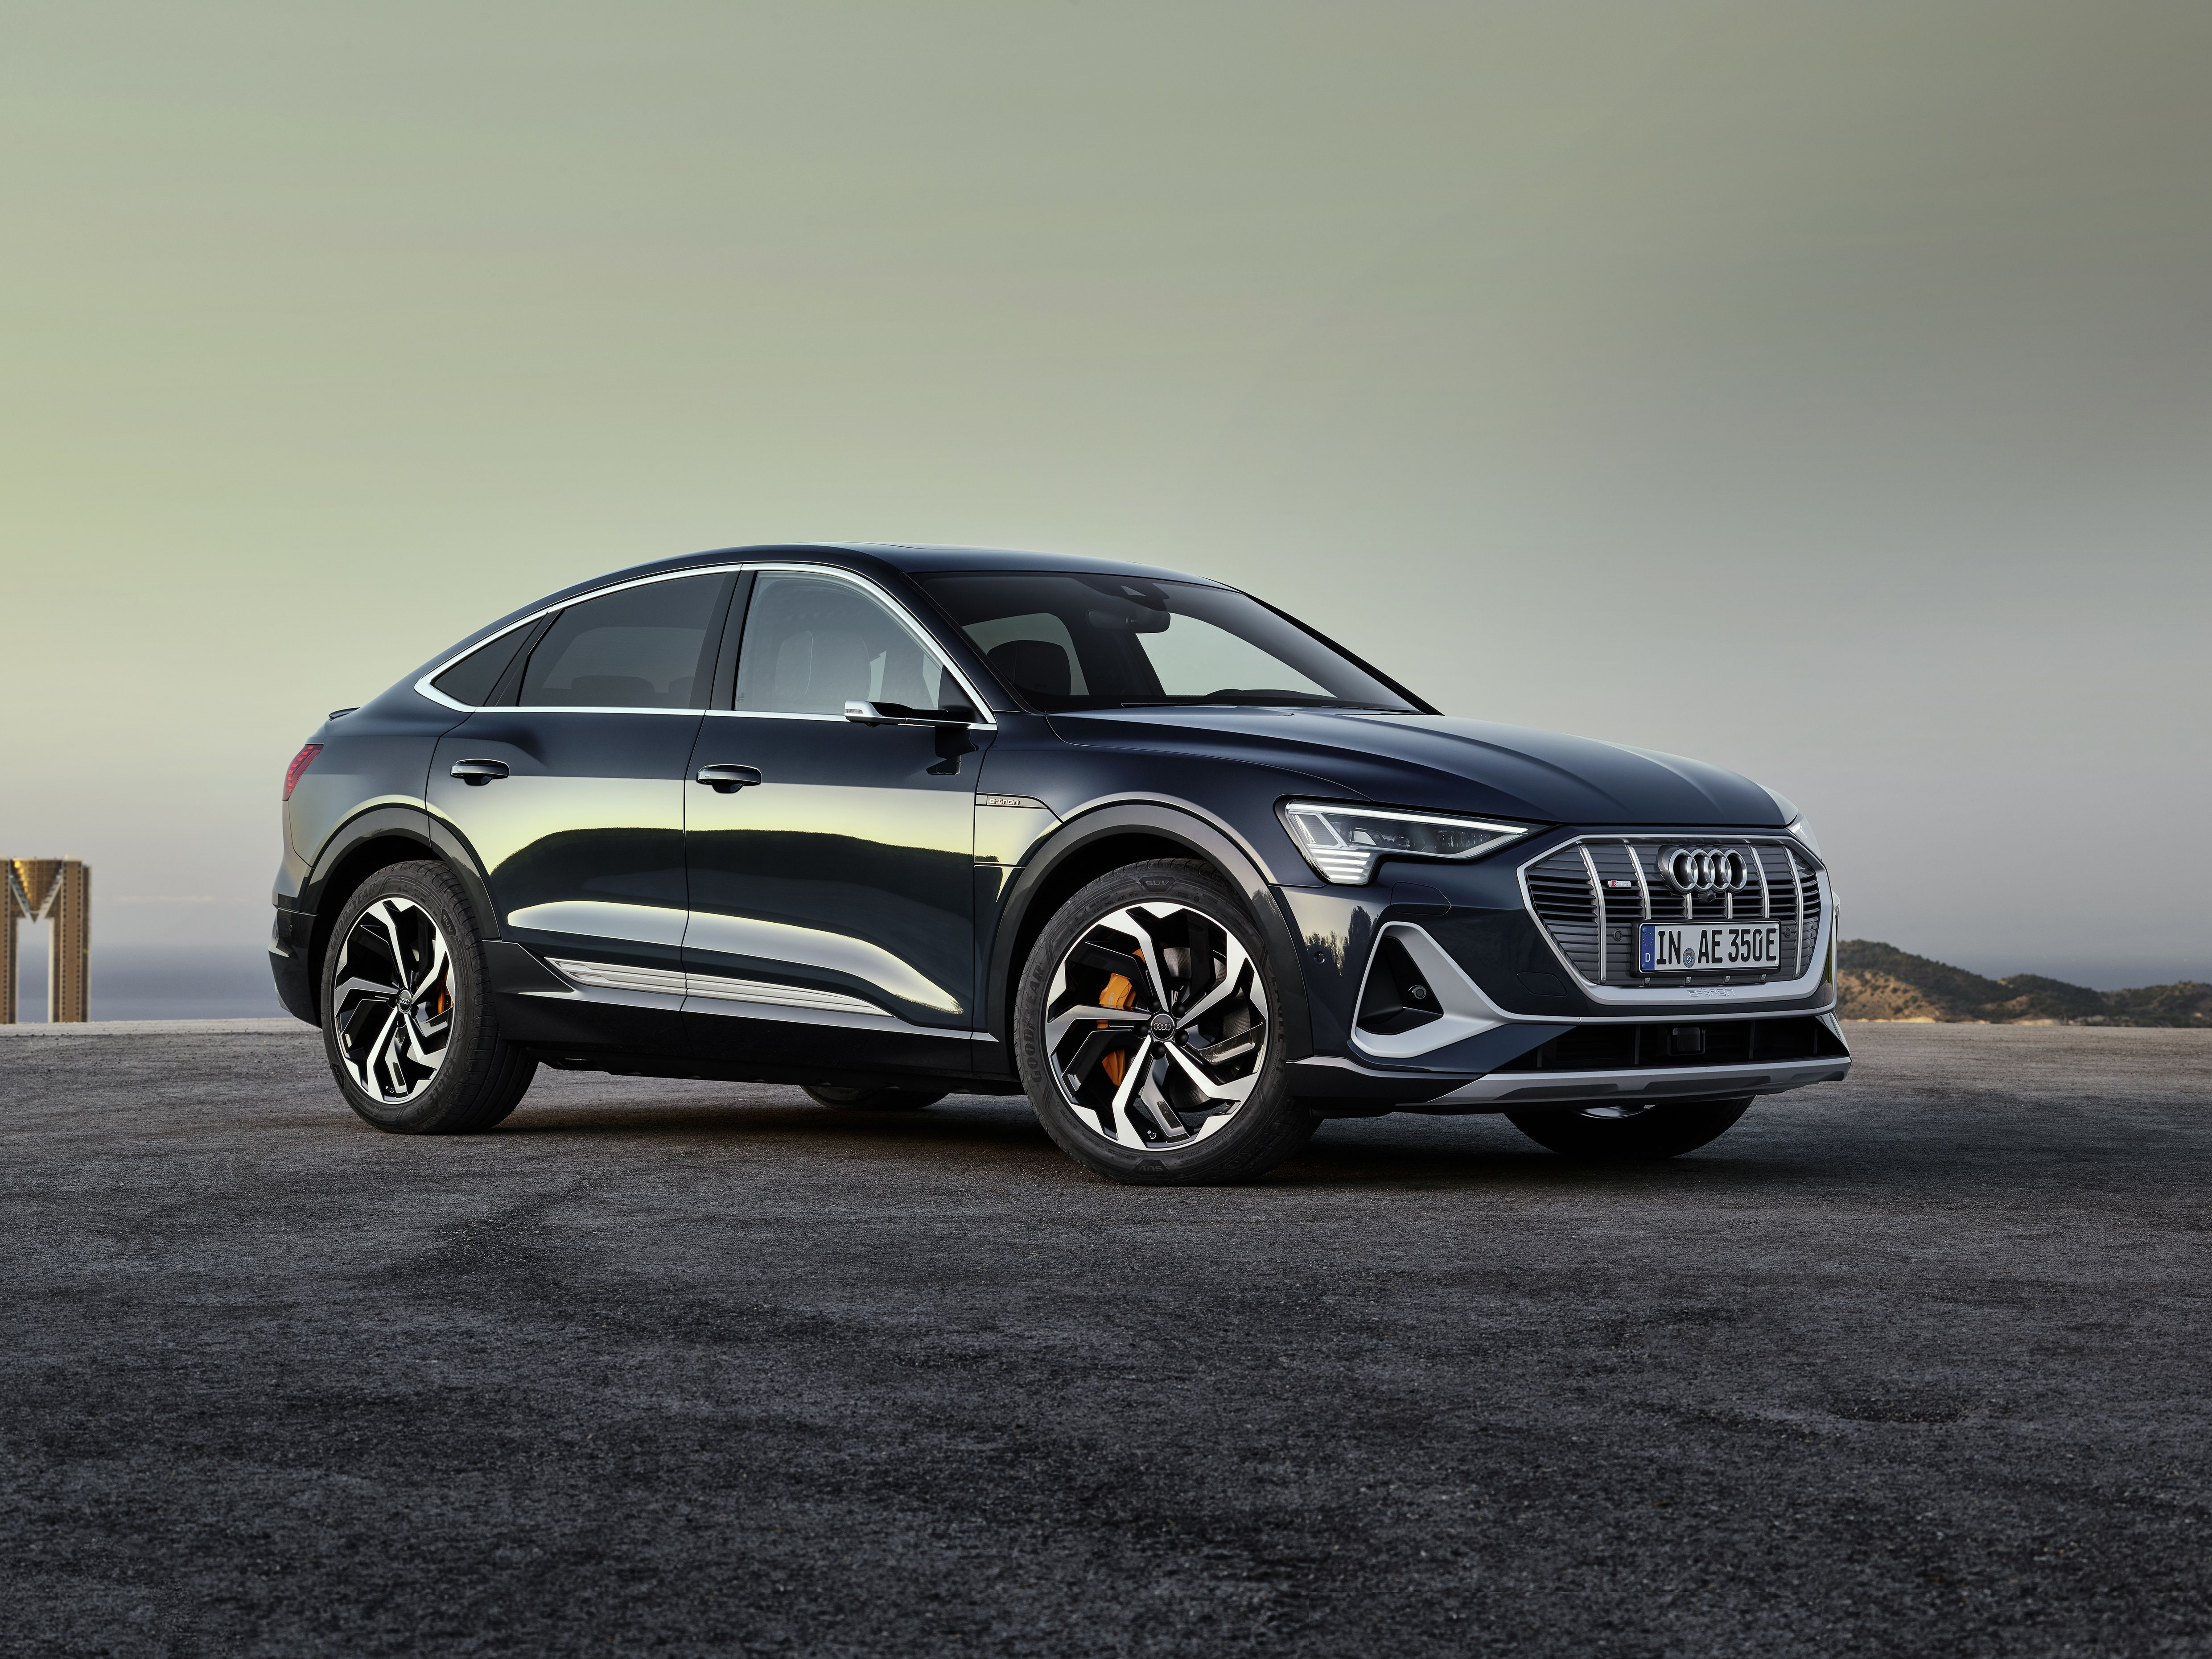 The Audi ETron Sportback Just The Latest Coupe SUV